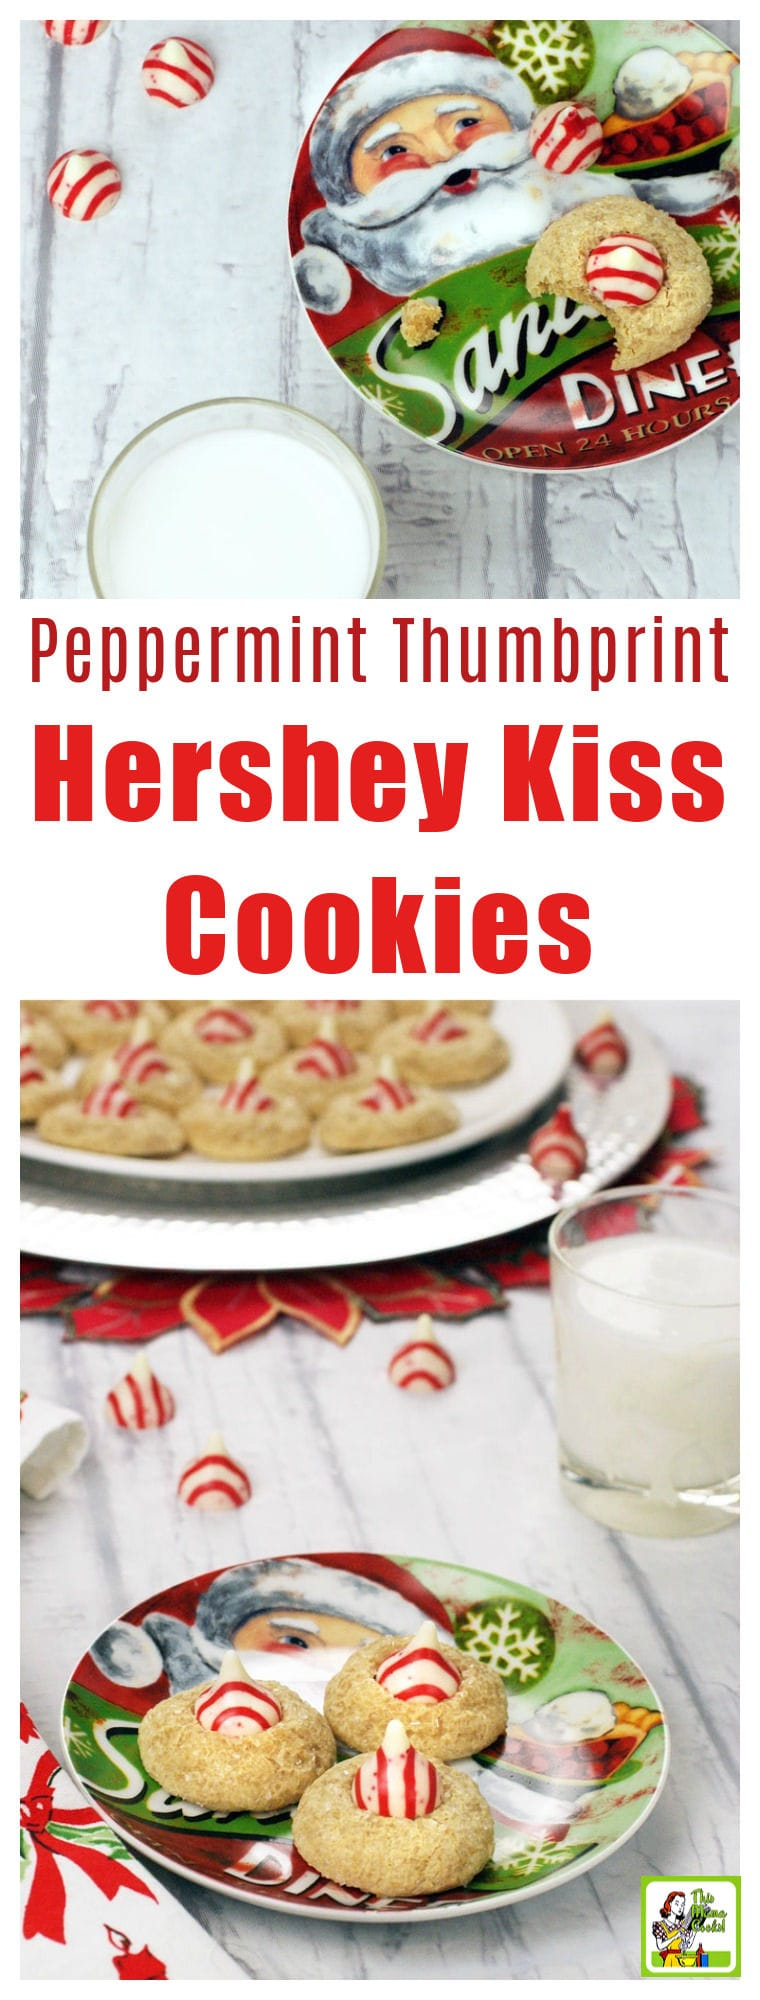 Peppermint Thumbprint Hershey Kiss Cookies Recipe